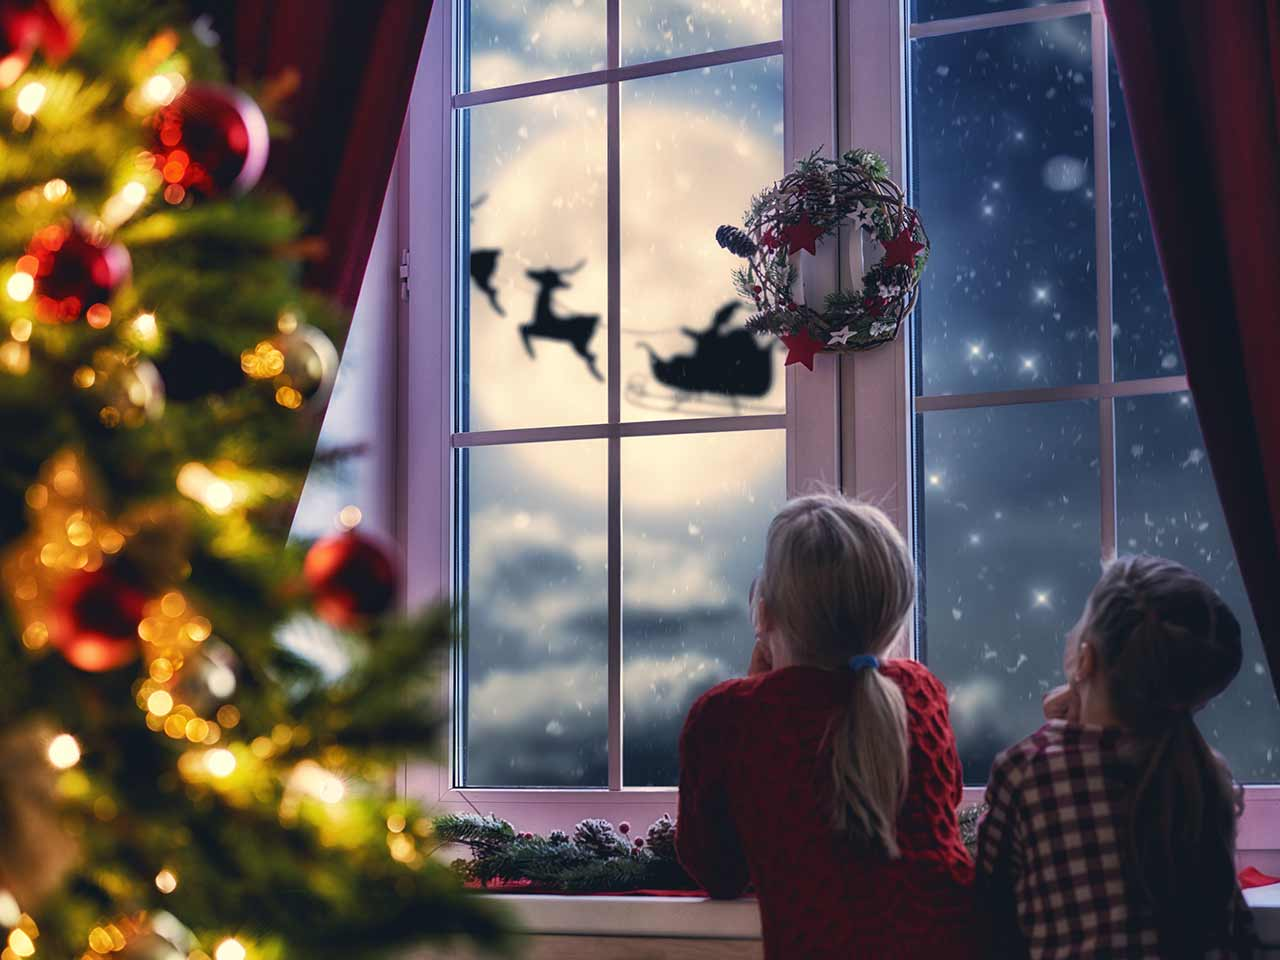 Children watching Santa in sleigh | Choreograph/iStock/Getty Images Plus/Getty Images